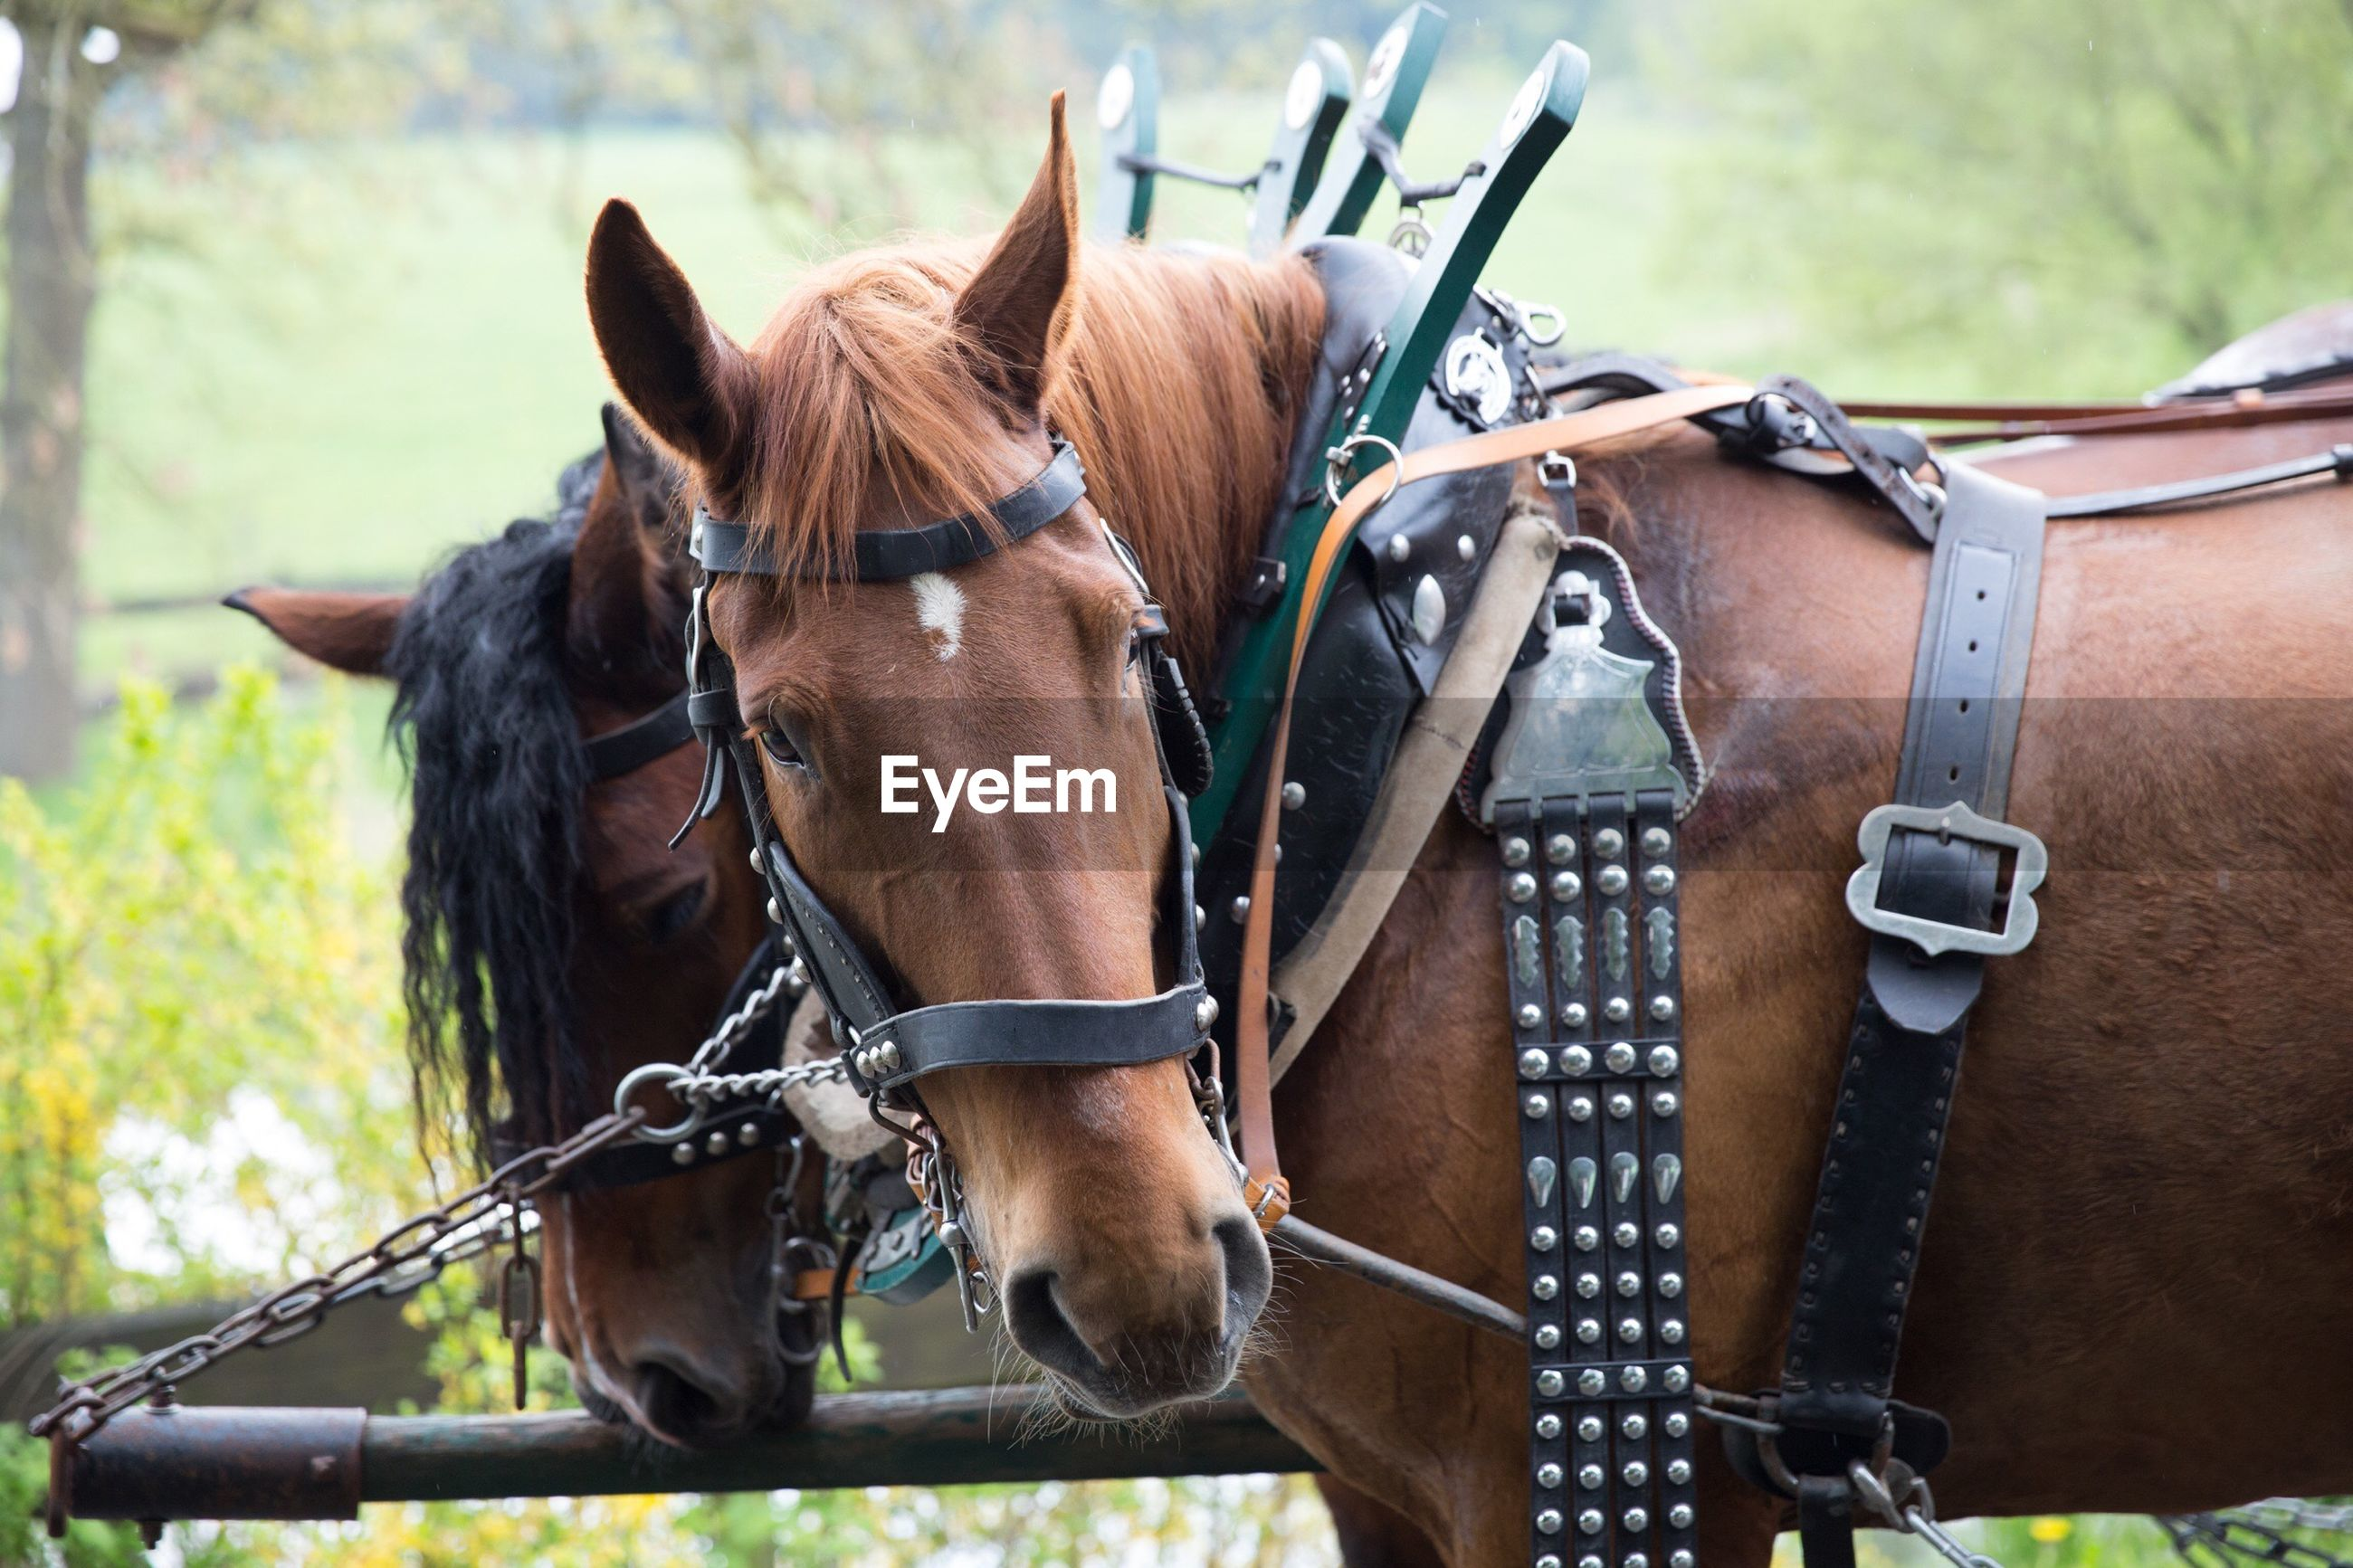 HORSE CART IN RANCH AGAINST BLURRED BACKGROUND